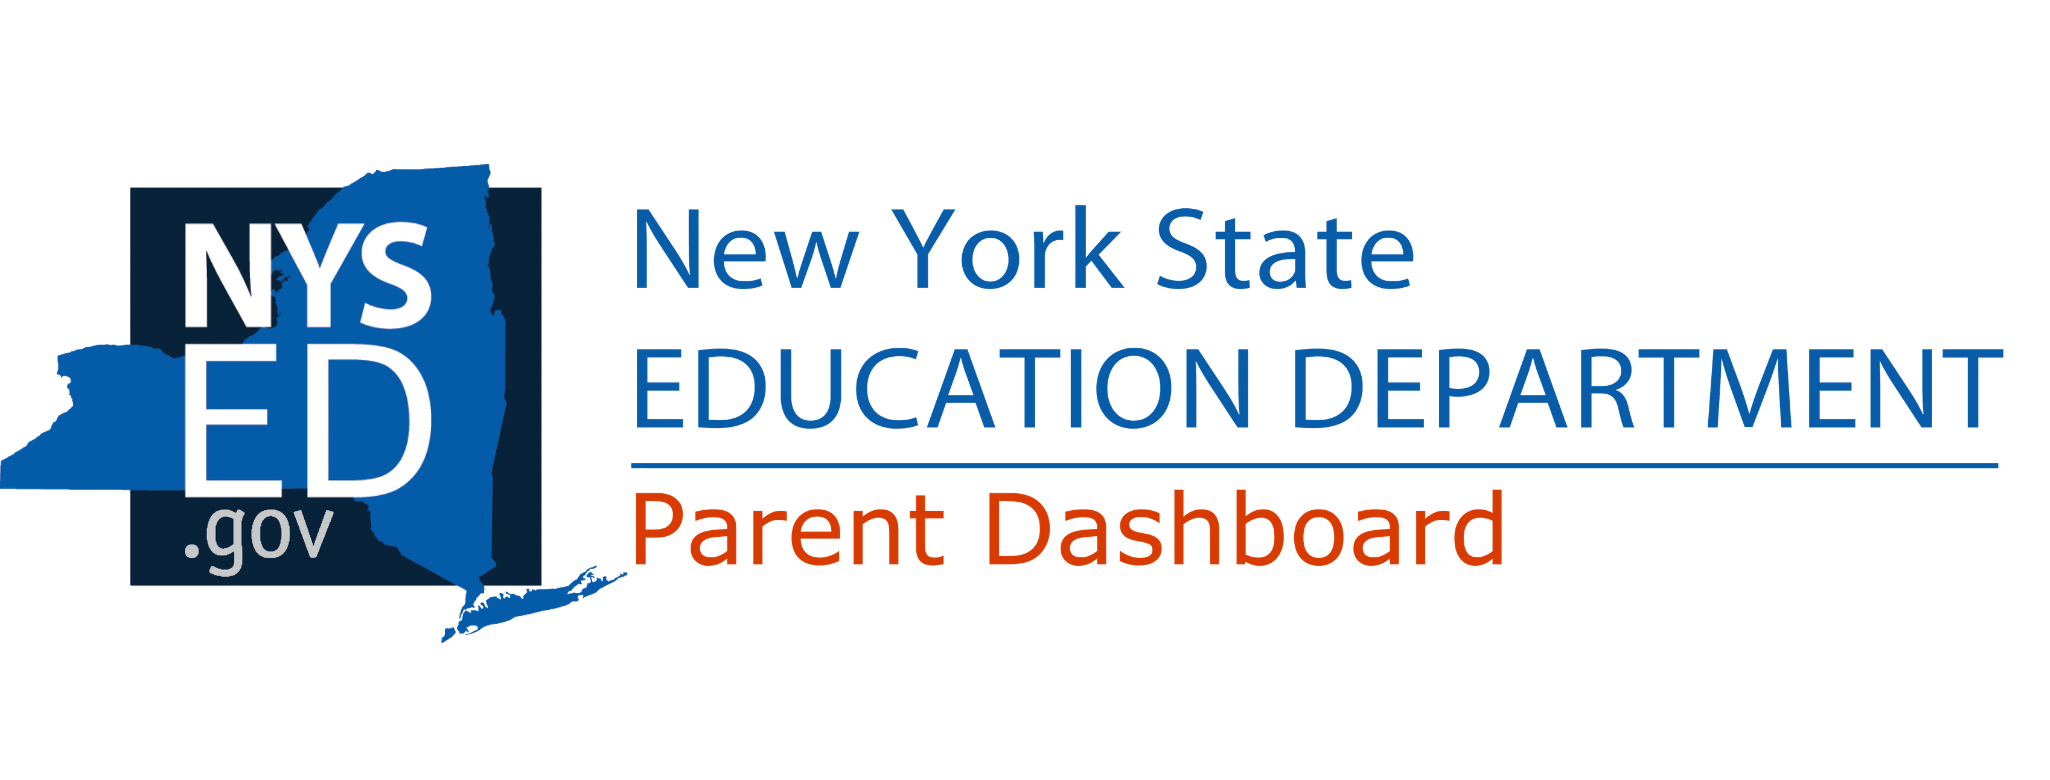 New York State Education Department Parent Dashboard Logo